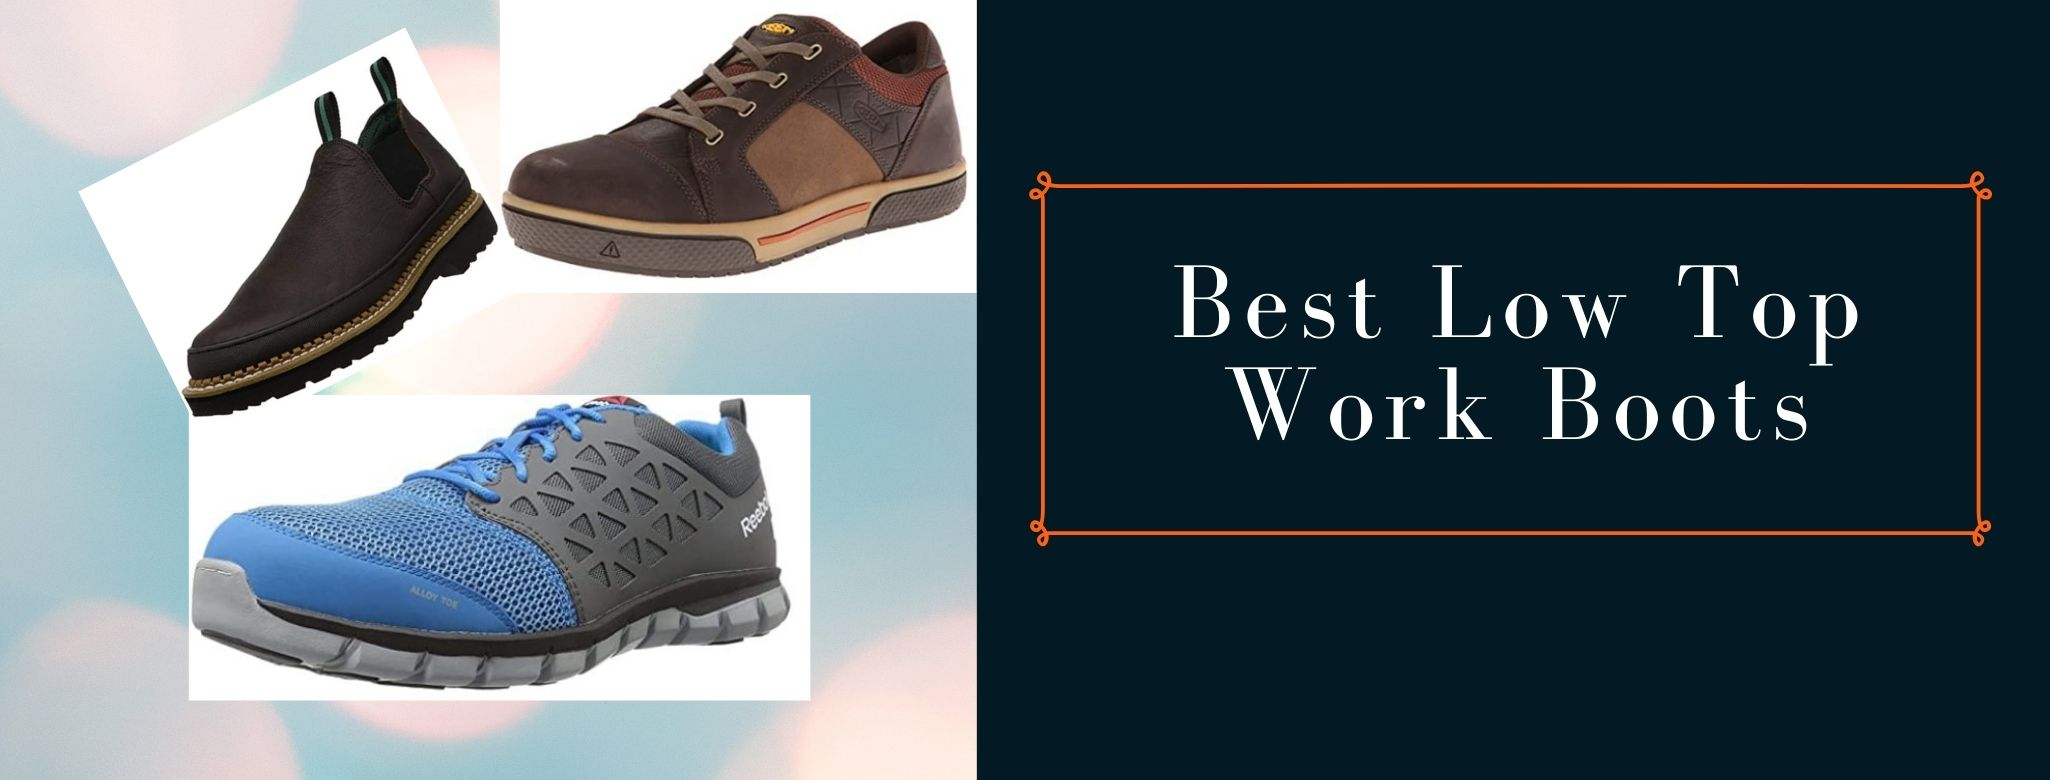 Top-rated rough and tough work boots